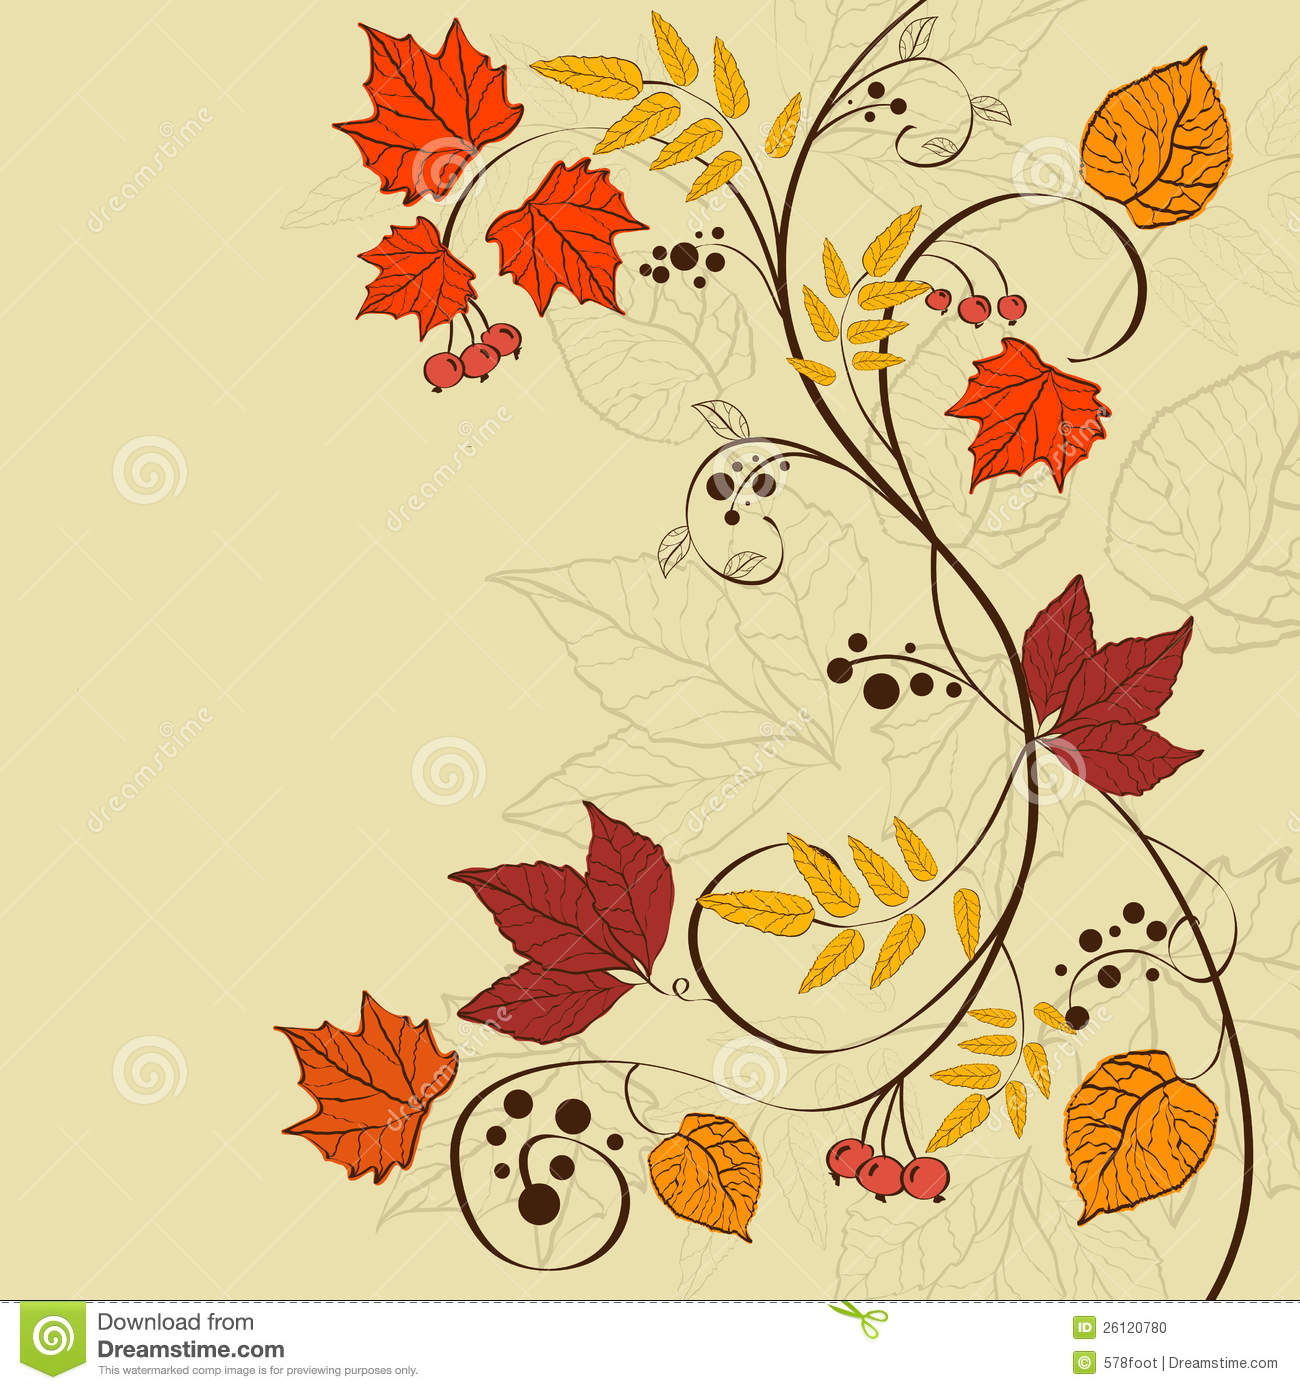 Fall Background Stock Photo - Image: 26120780